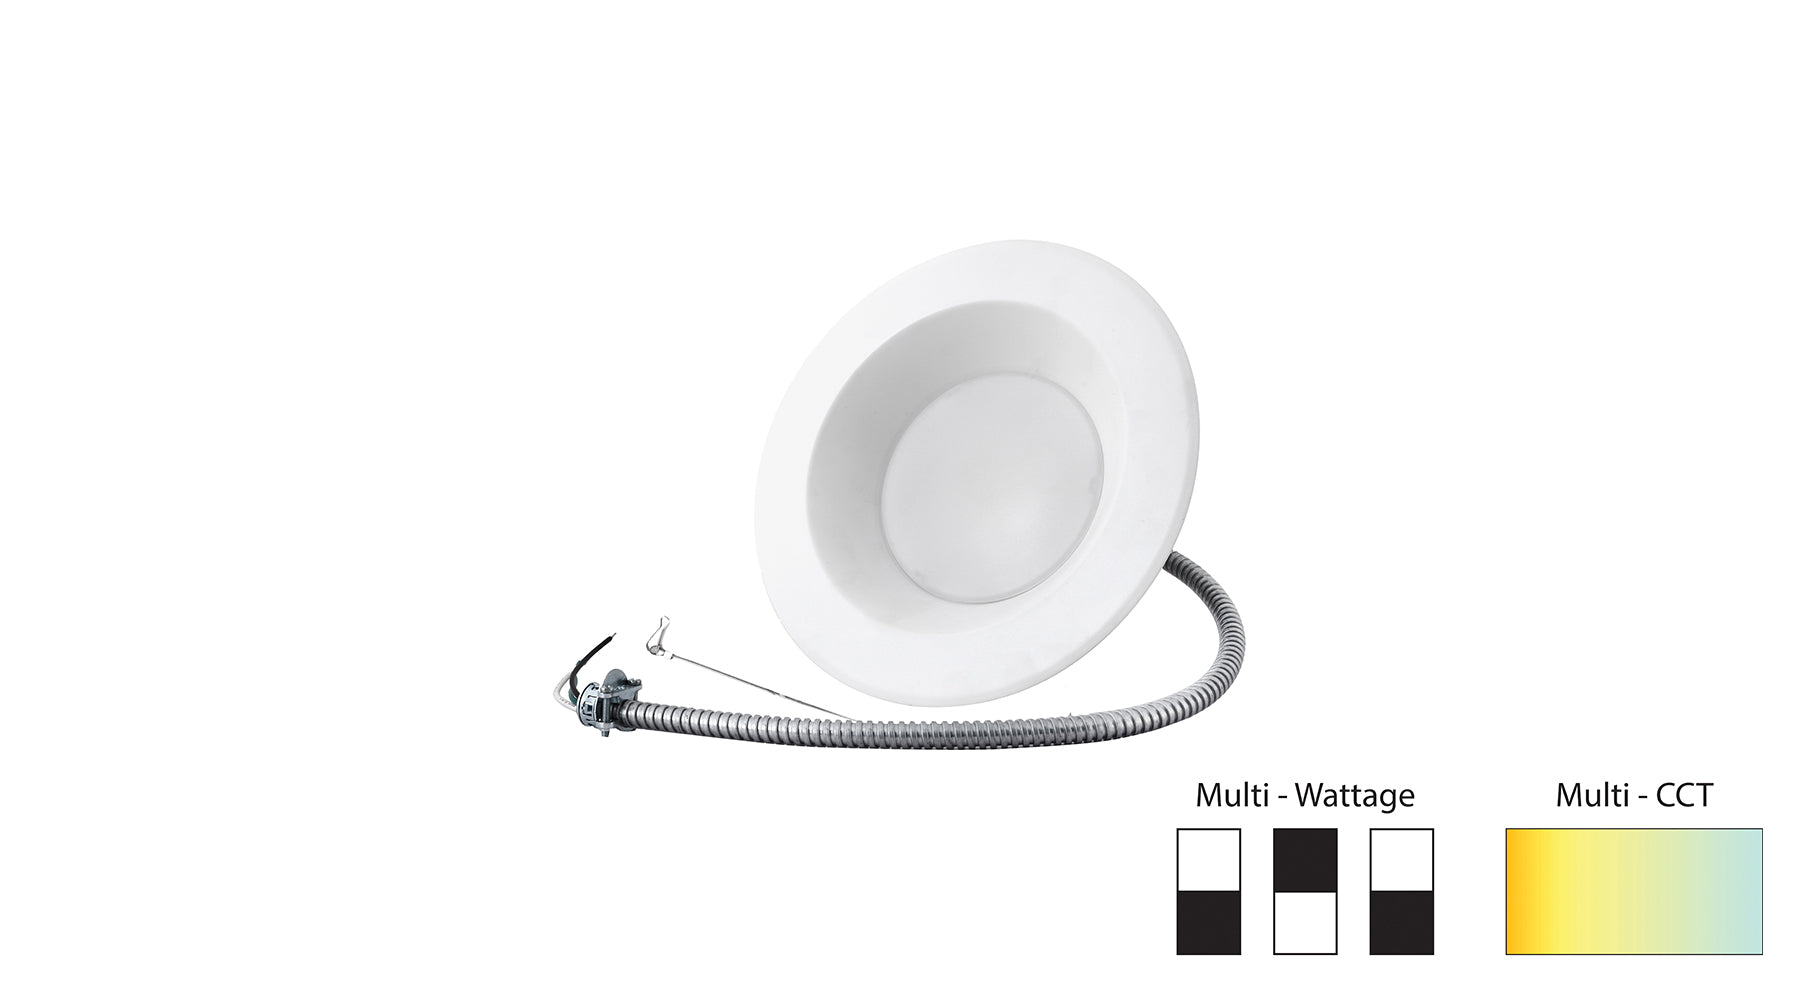 10W - 22W 6 inch LED Commercial Downlight Multi-Watt / CCT - LEDone - CSLED